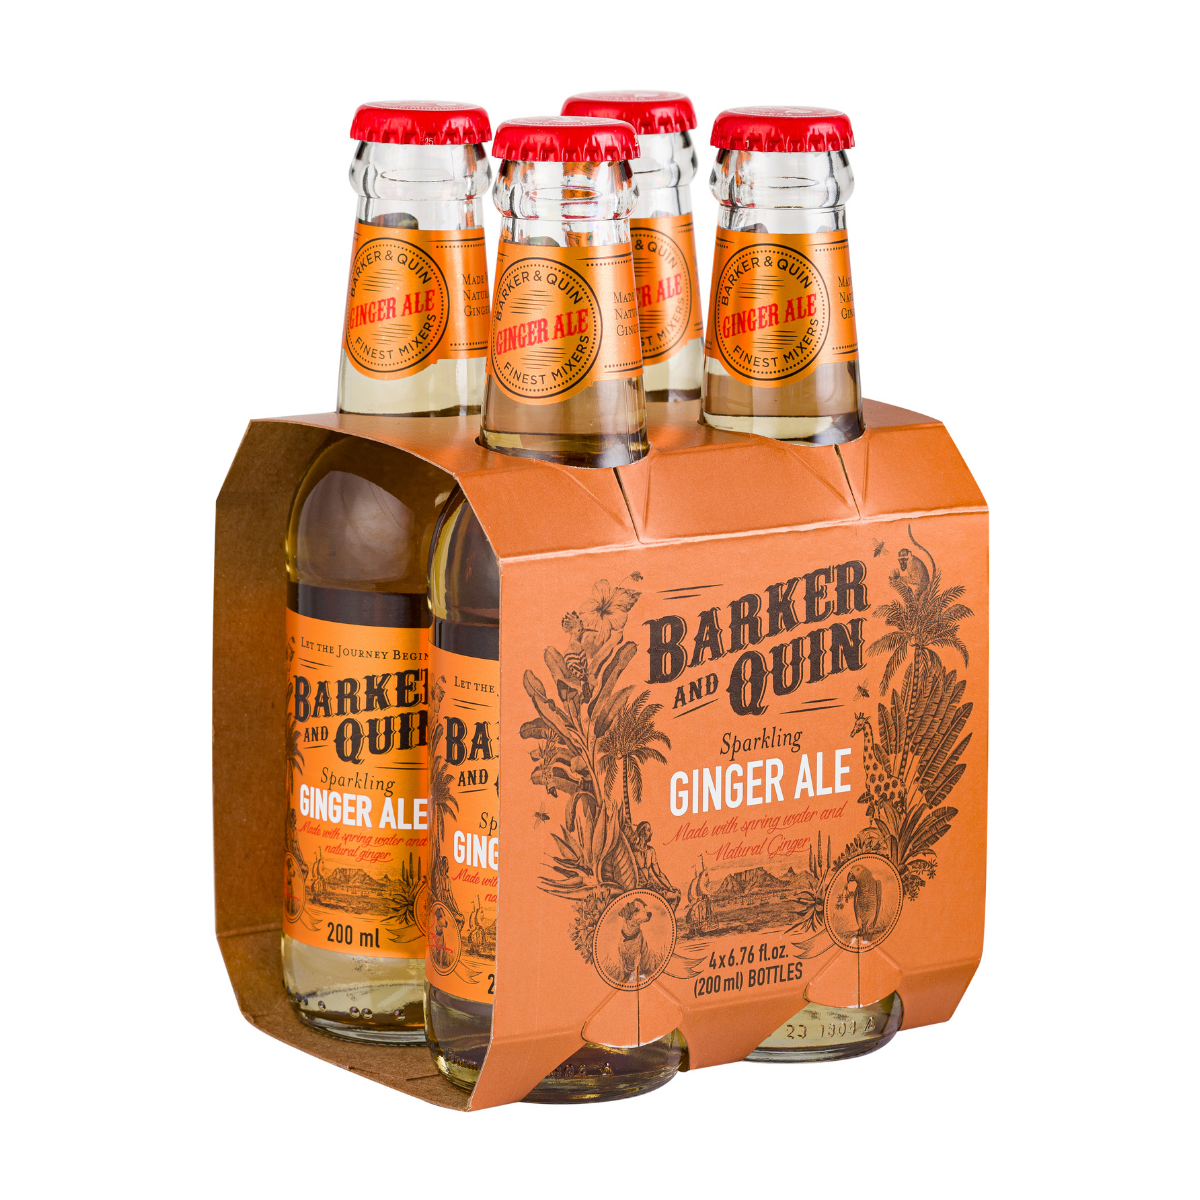 Barker and Quin Ginger Ale (4 x 200ml)